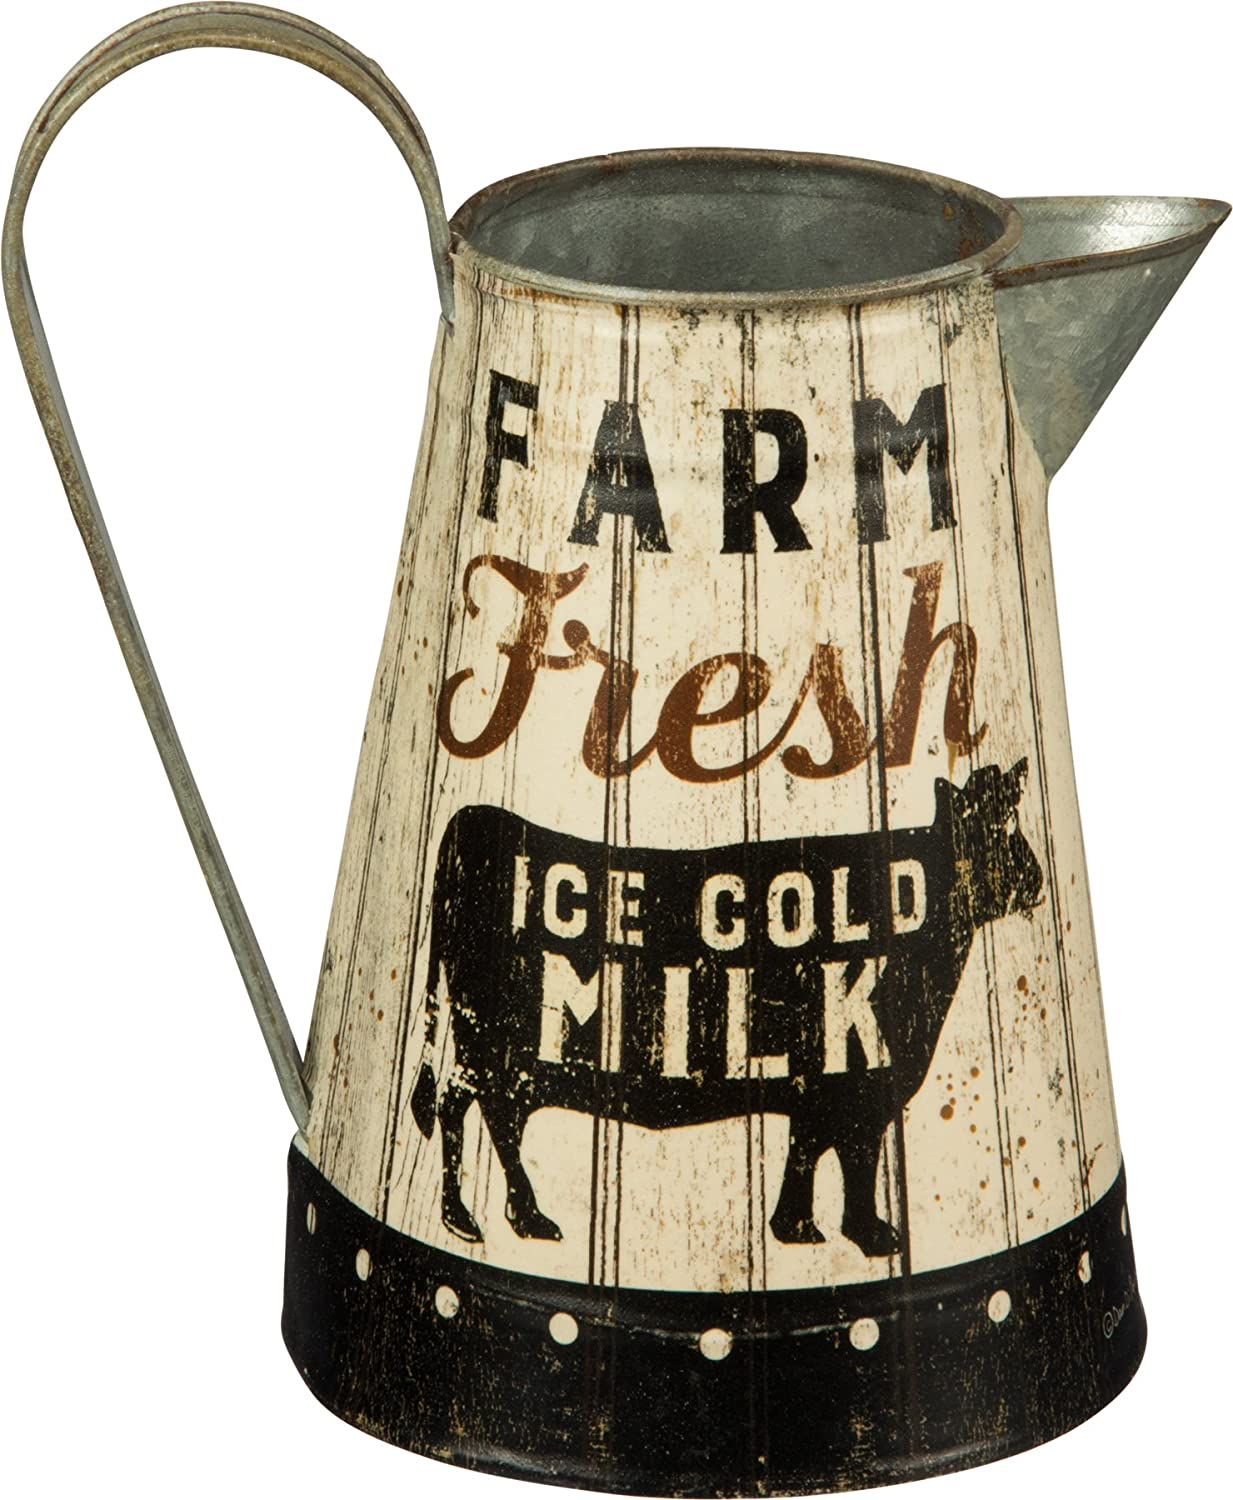 Rustic Distressed Metal Farm Fresh Milk Pitcher or Watering Can, Vase, or Jug by Primatives by Kathy,White Black